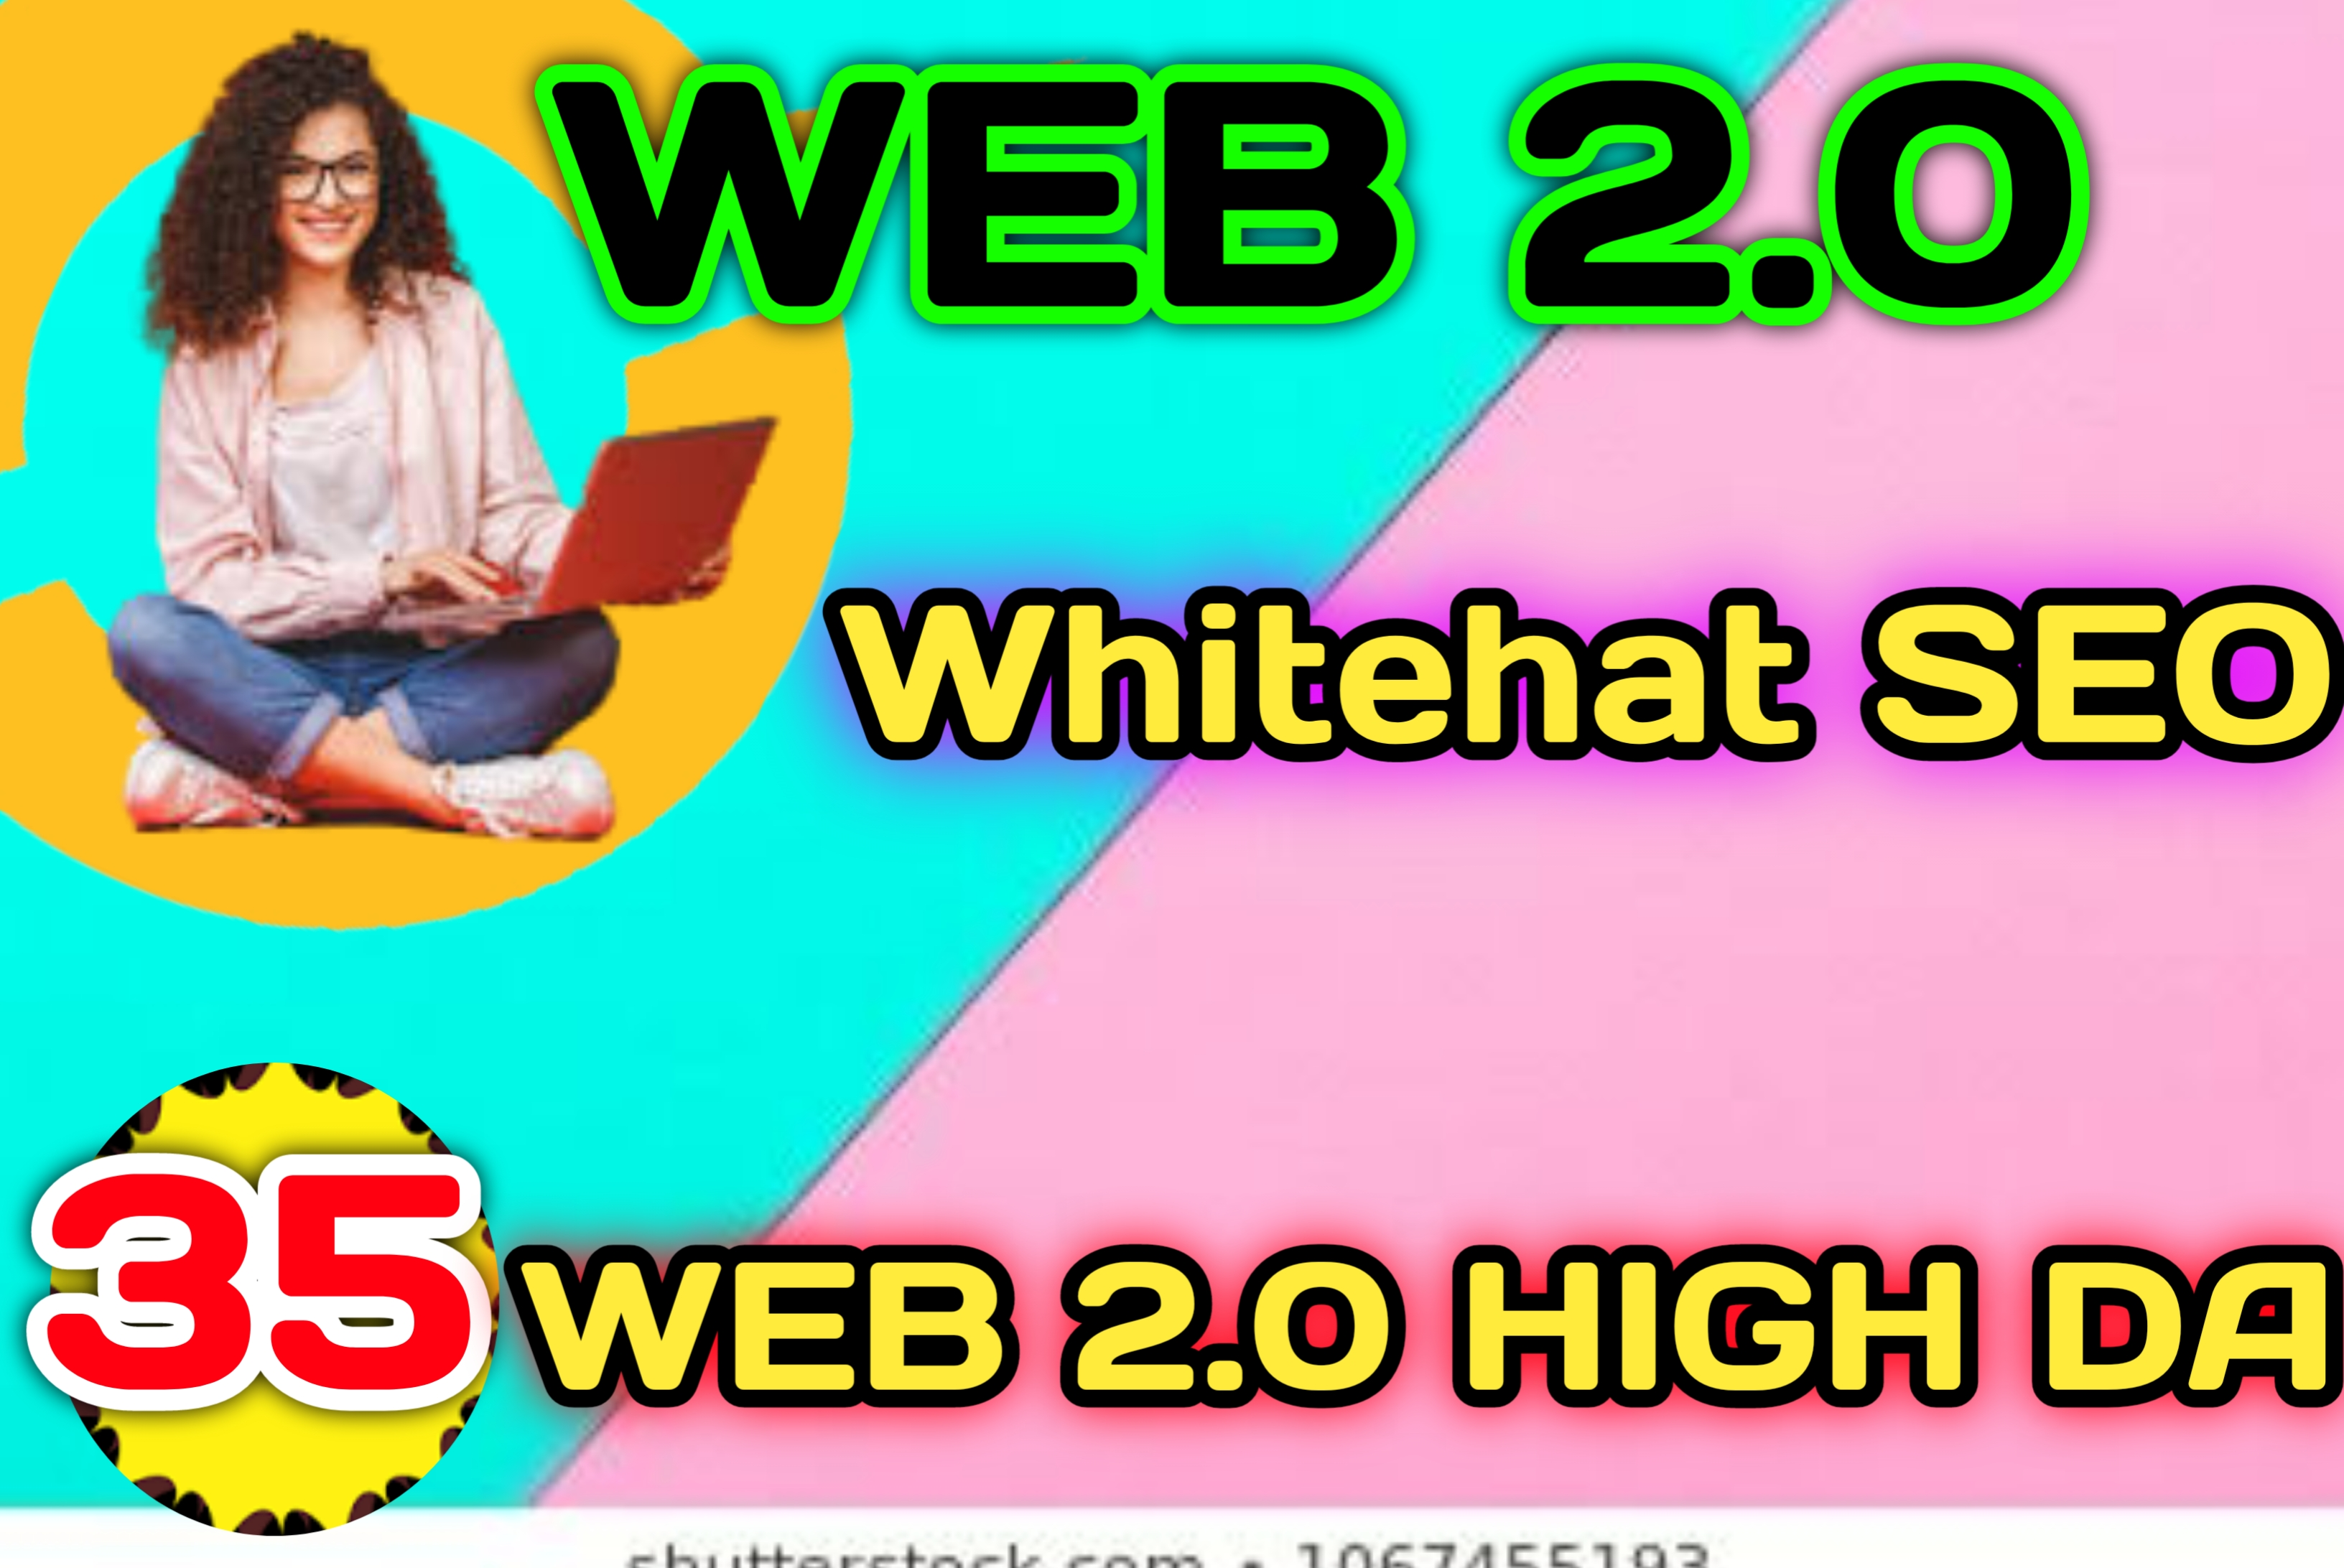 I do 30 Web2.0 High DA Do-follow Backlinks permanent link building